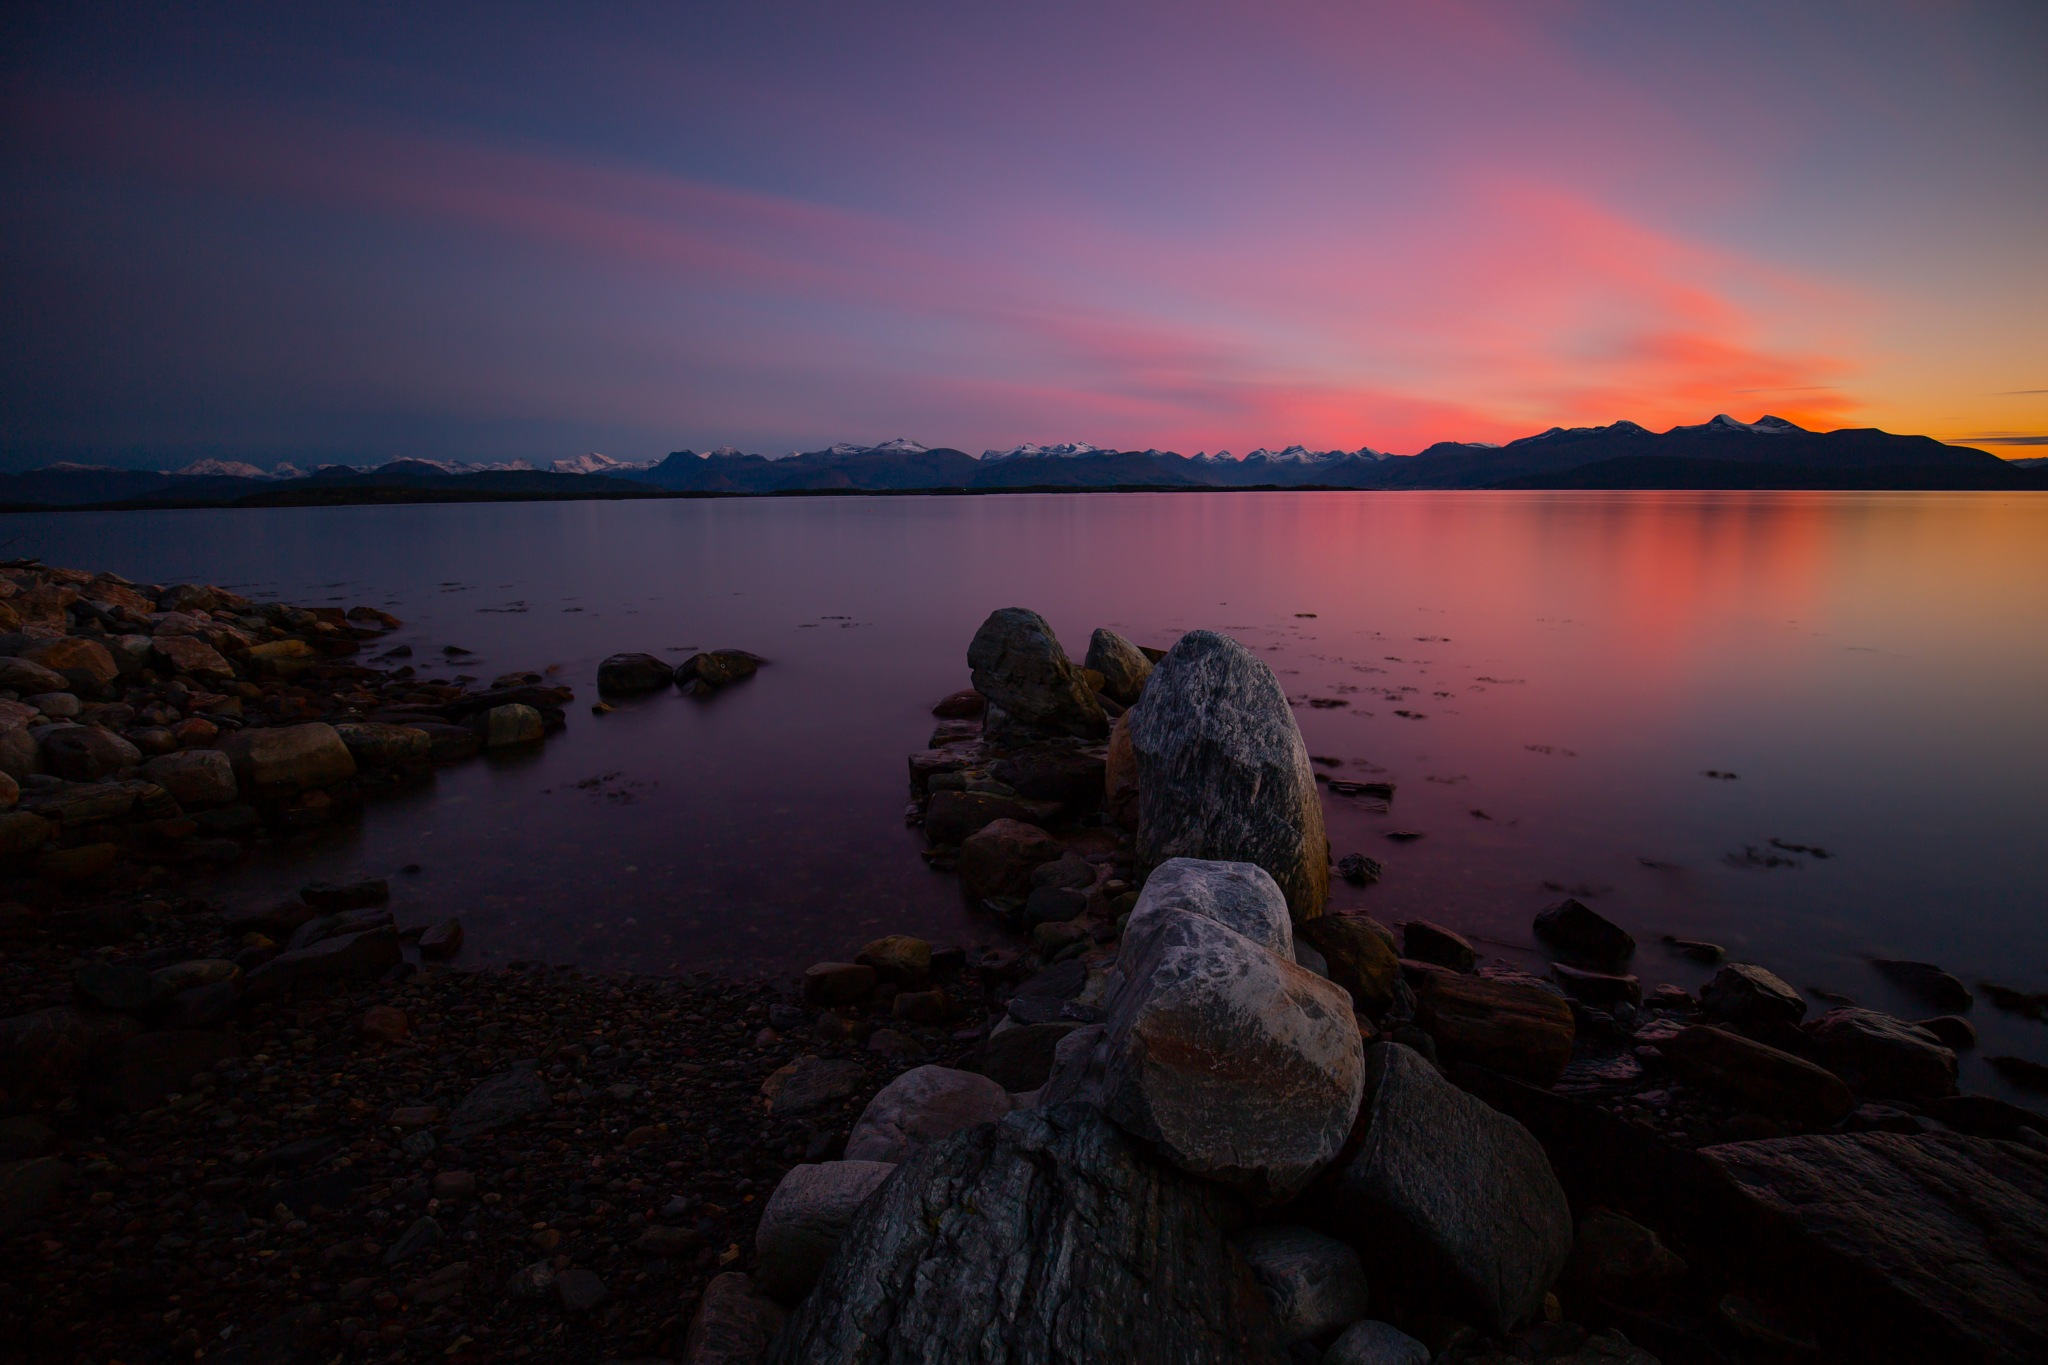 After sunset in Norway by Line Glomseth